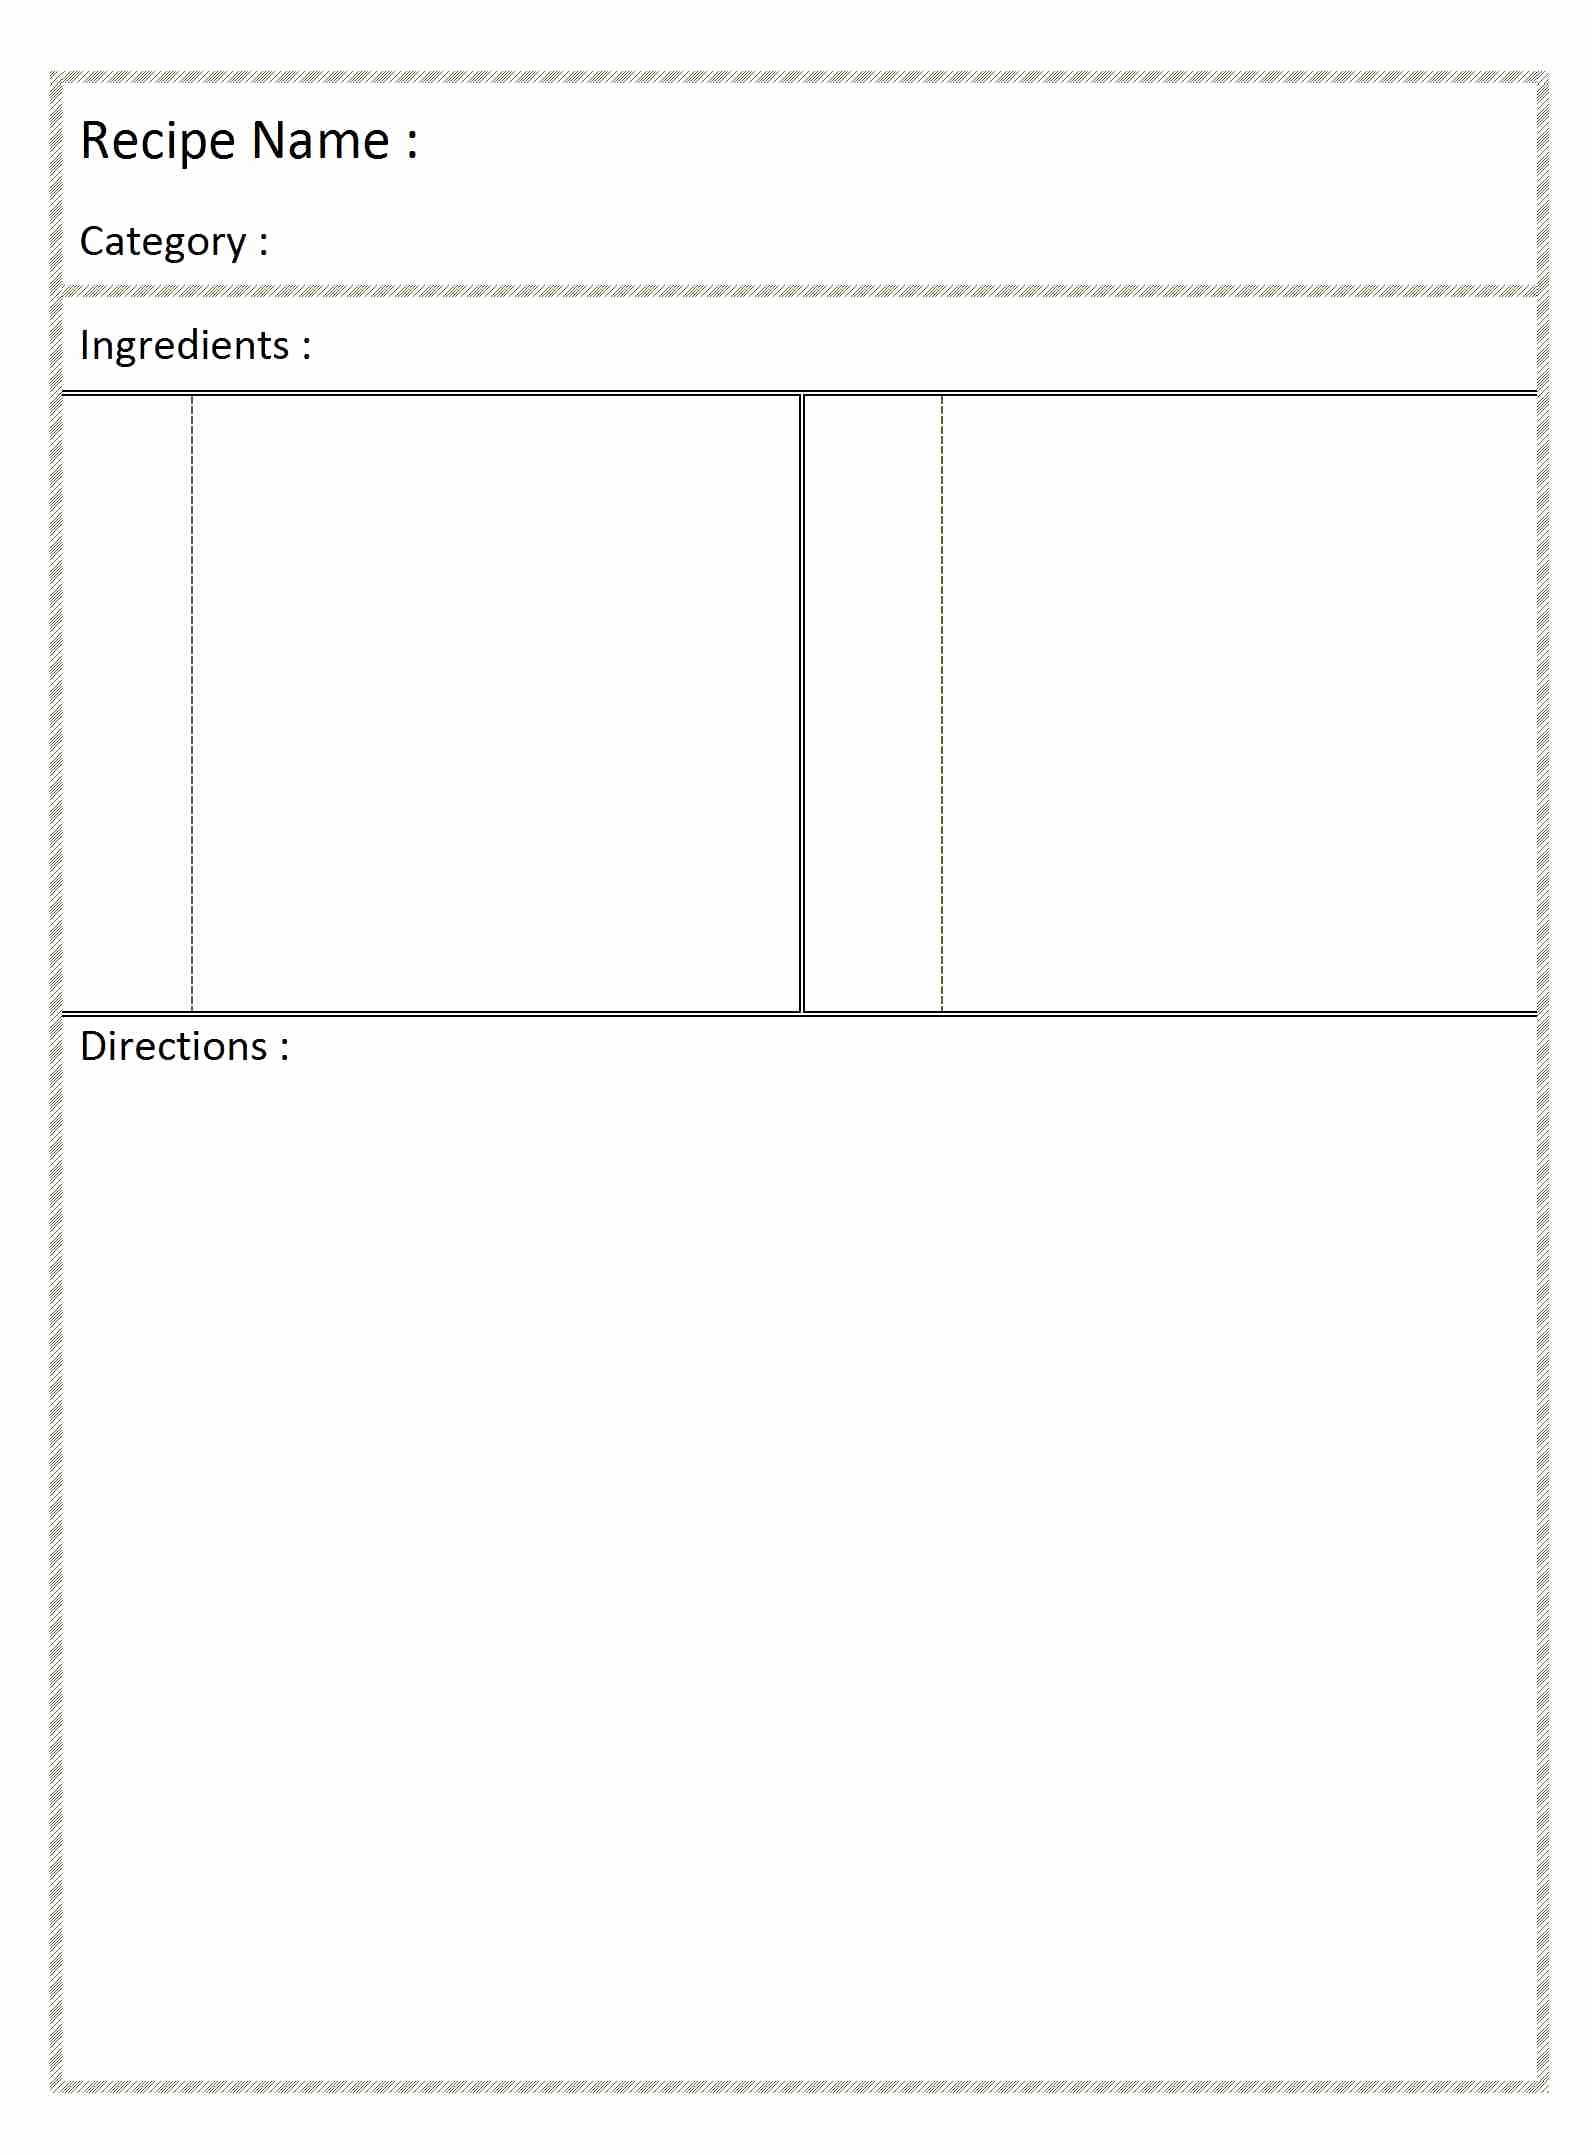 Free Card Templates for Word Elegant Recipe Archives